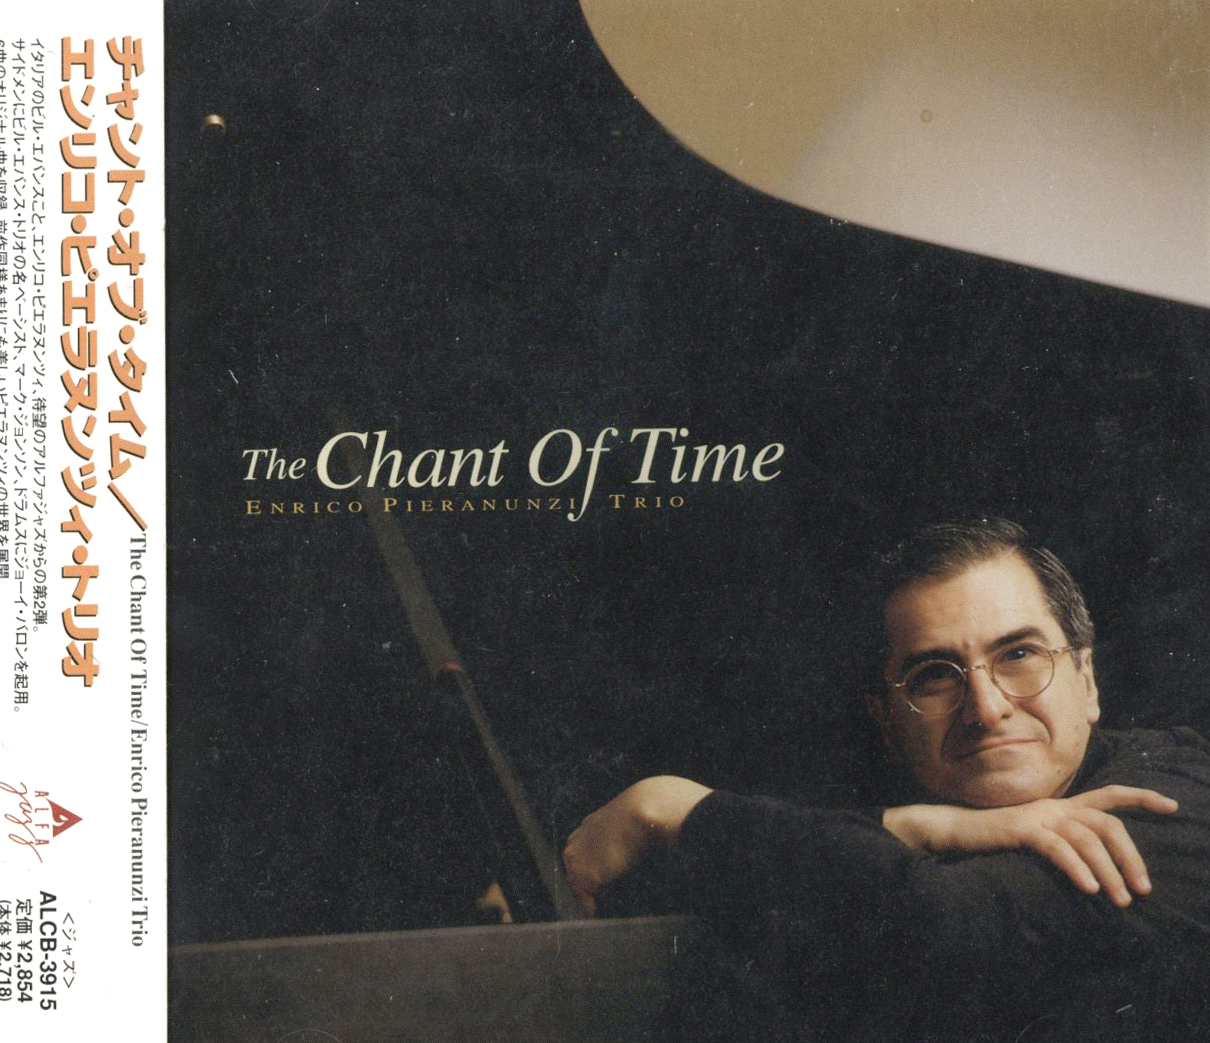 The chant of time.jpg